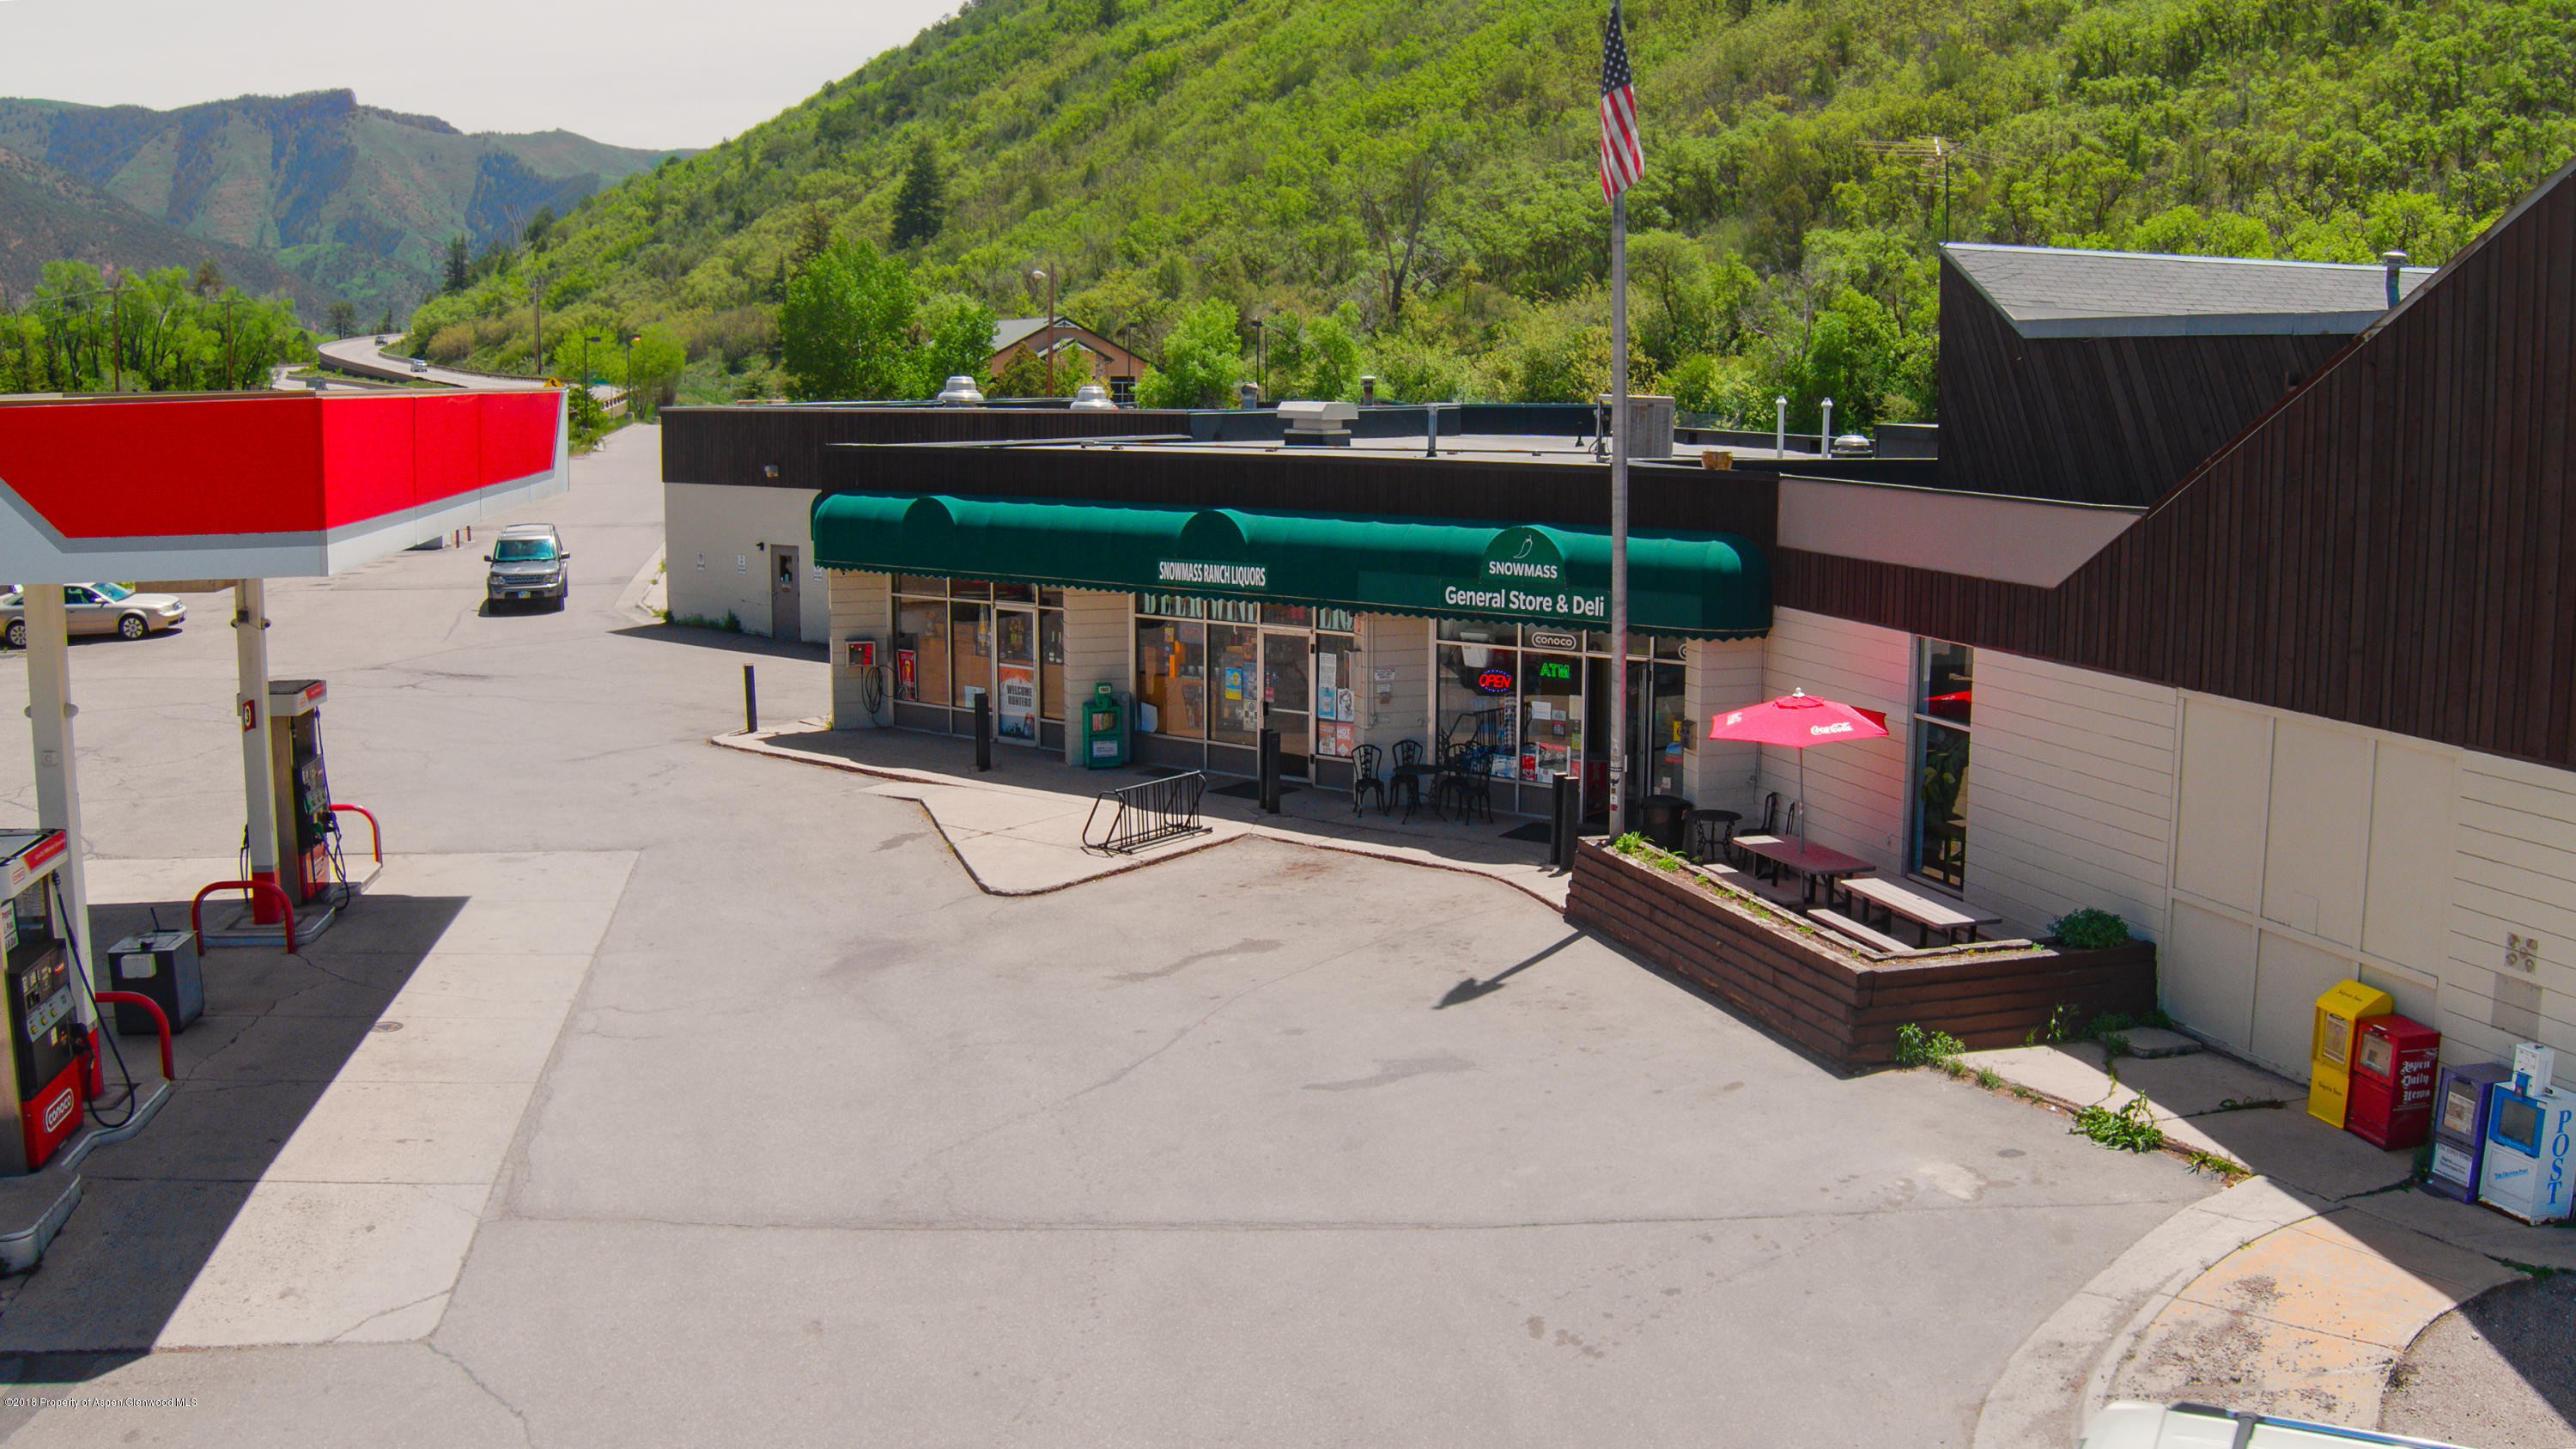 MLS# 155478 - 5 - 26808 Co-82 , Snowmass, CO 81654